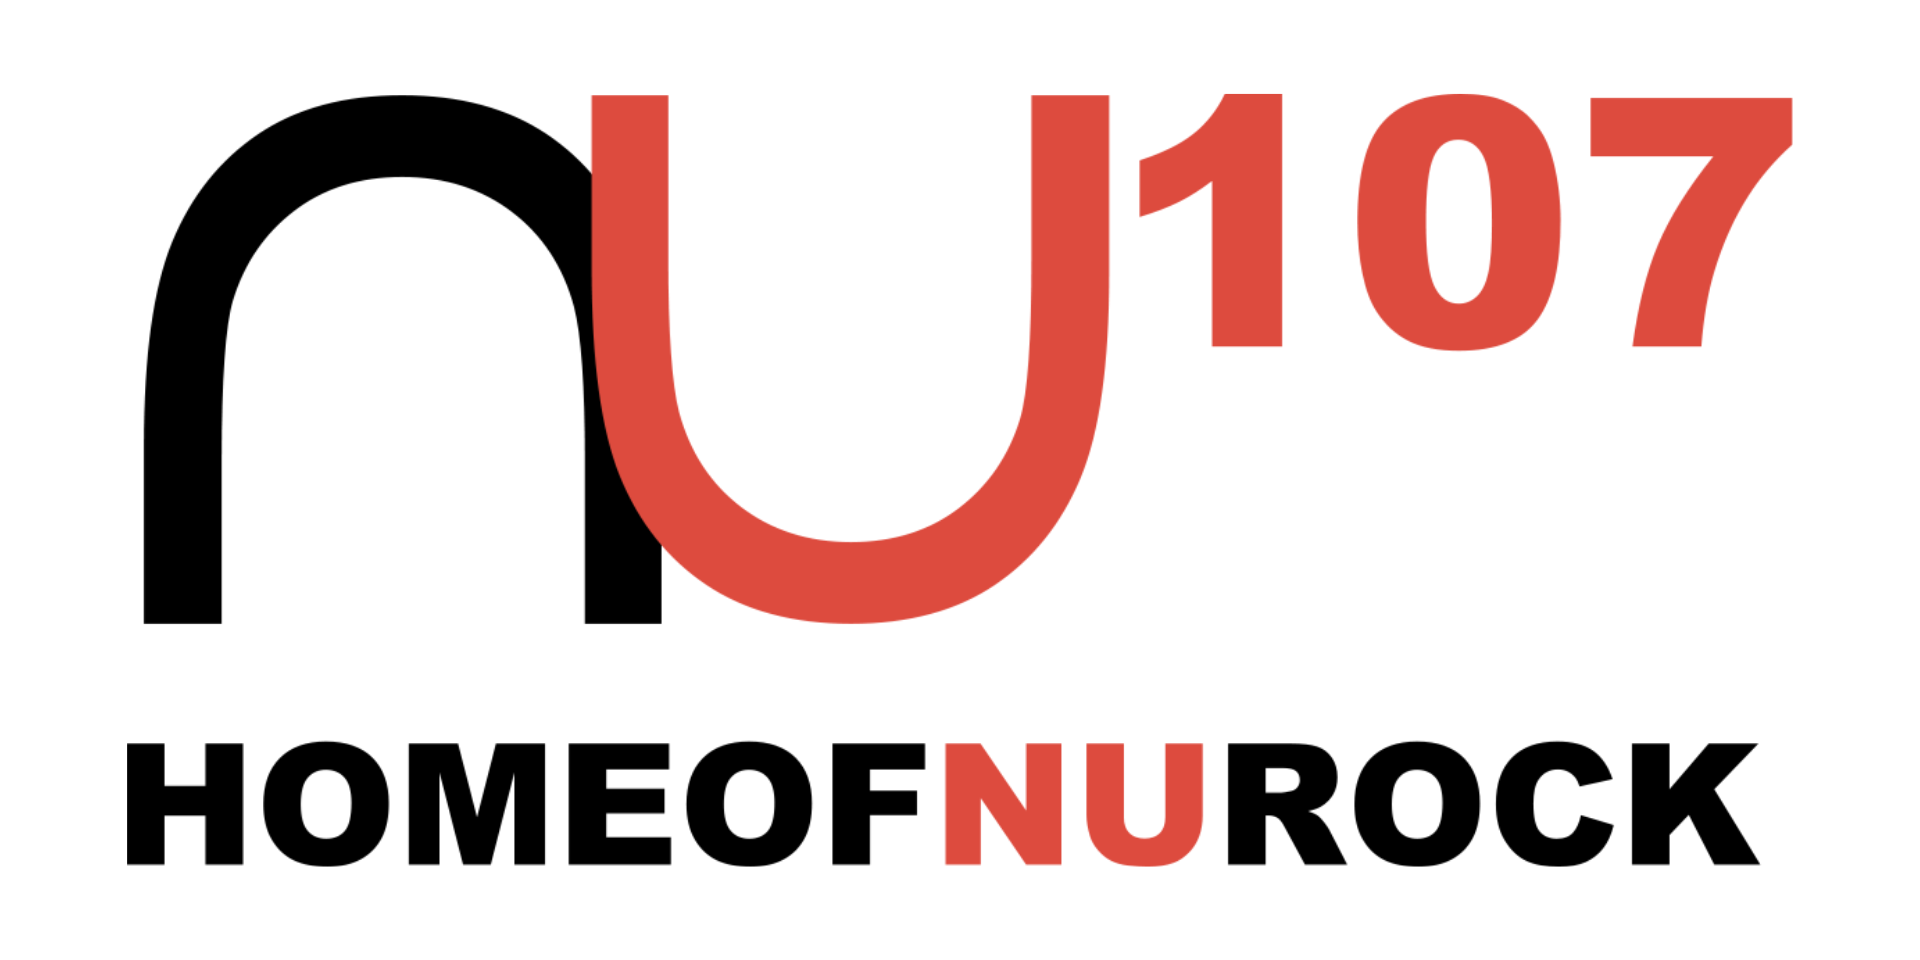 Say goodbye to 2020 with another NU107 reunion